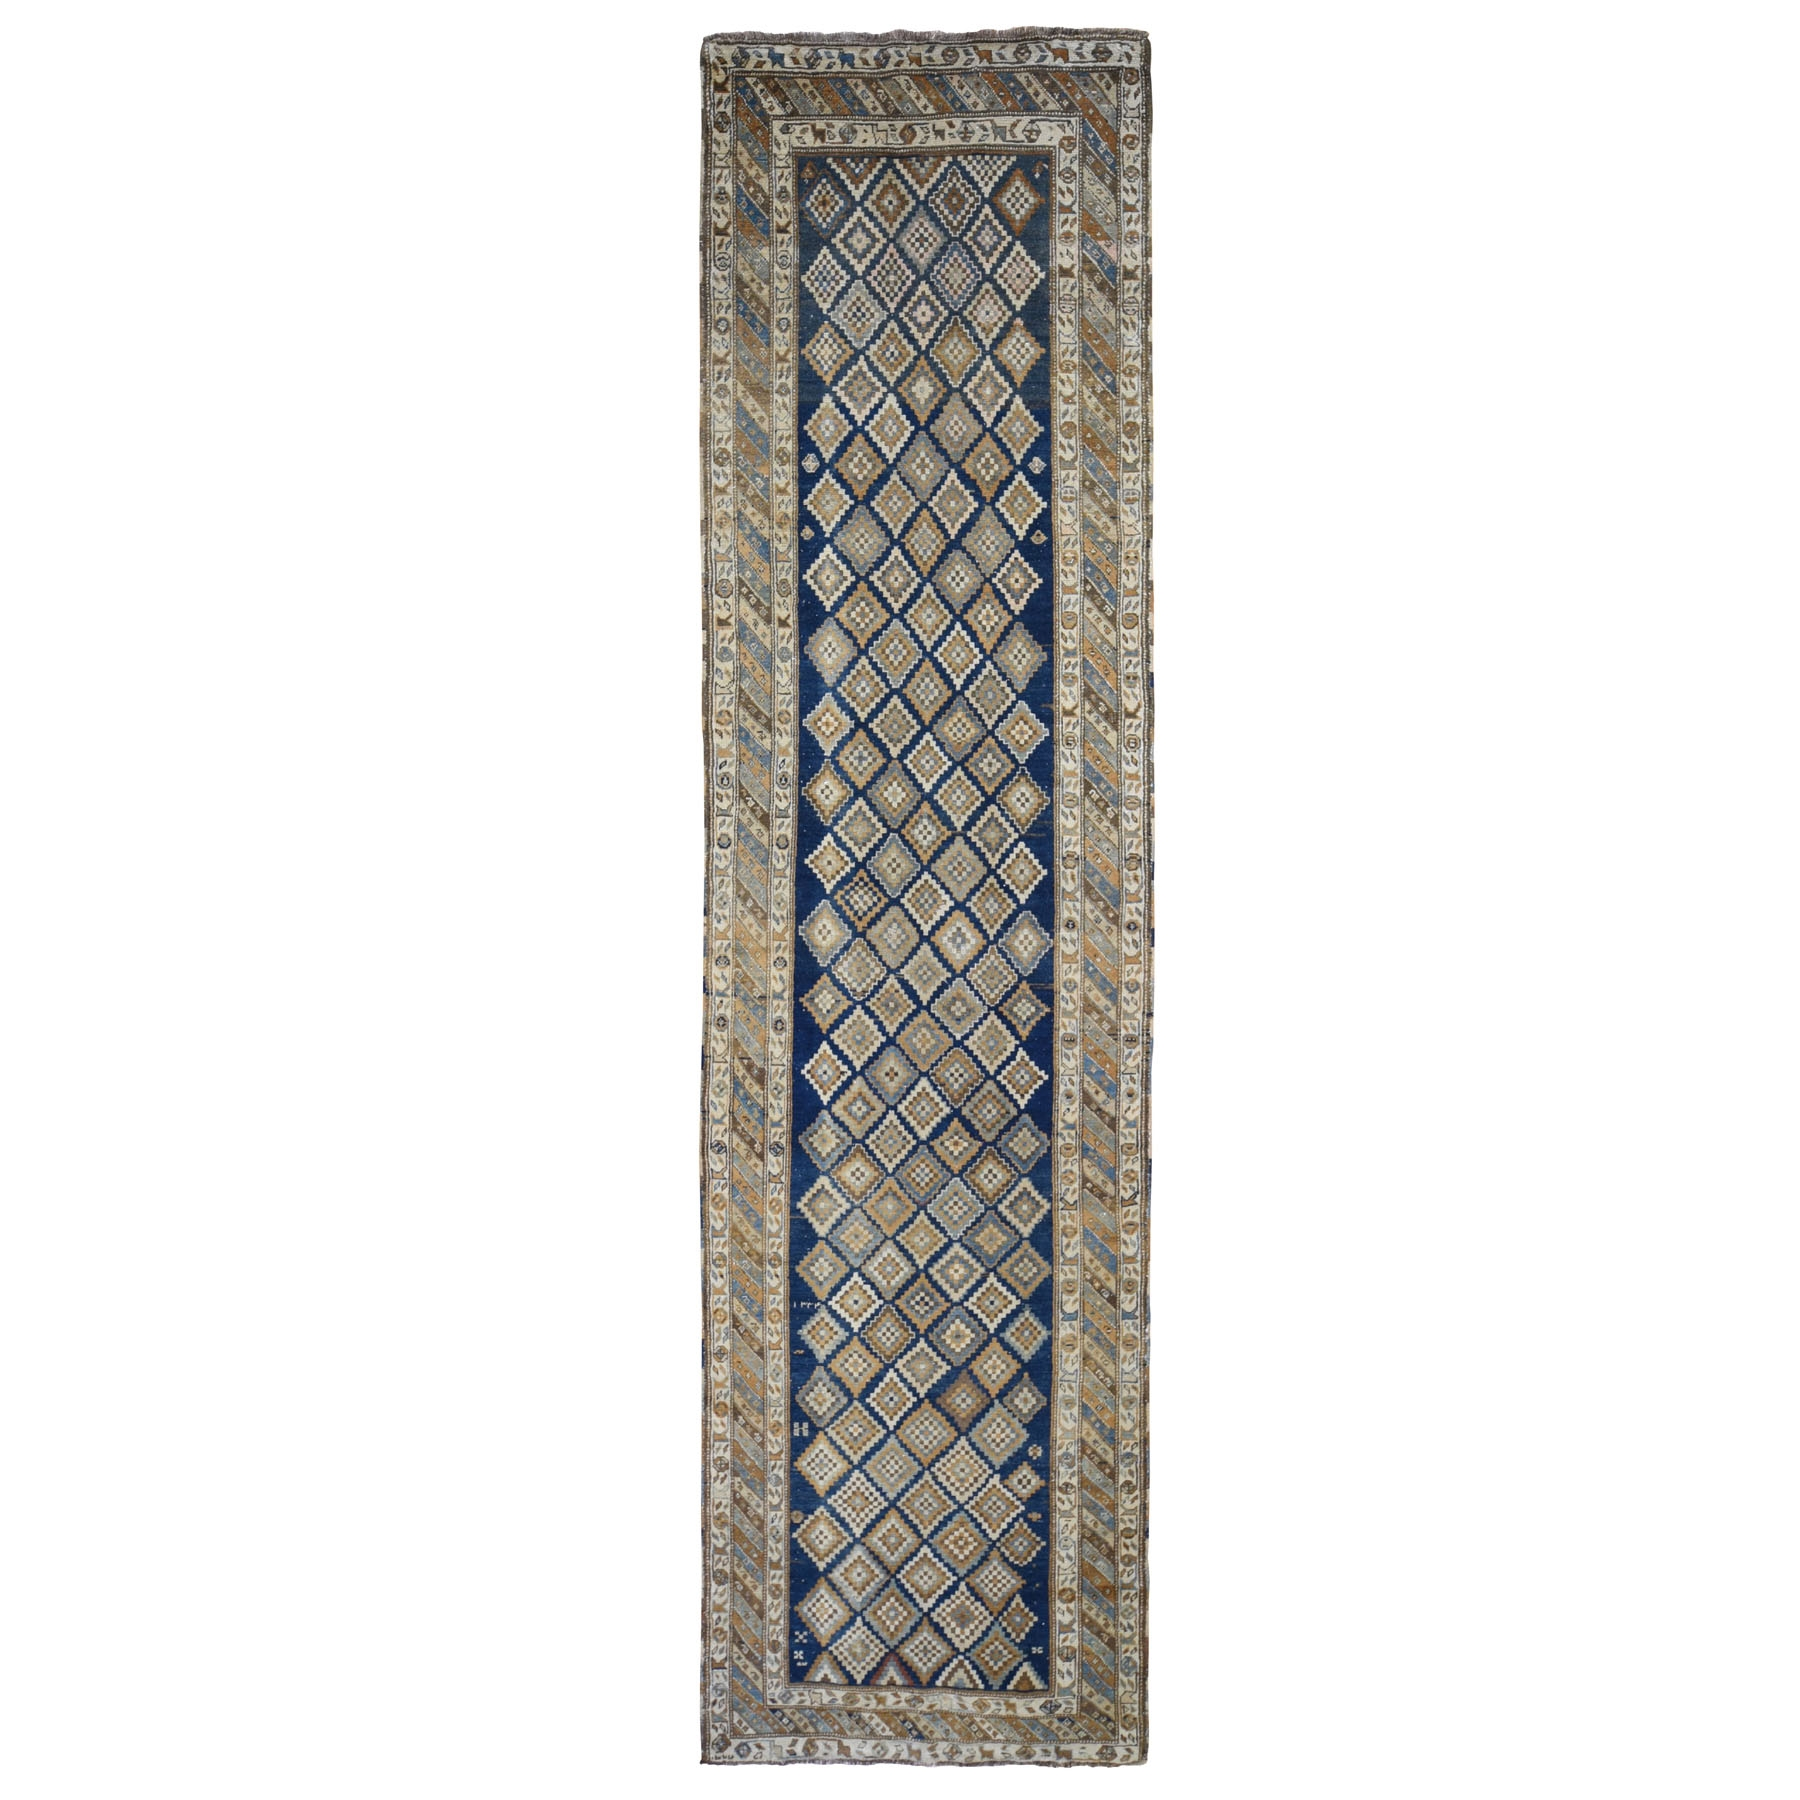 3-4 x13-2  Blue Antique Caucasian Wide Runner All Over Square Design Hand Knotted Fine Oriental Rug